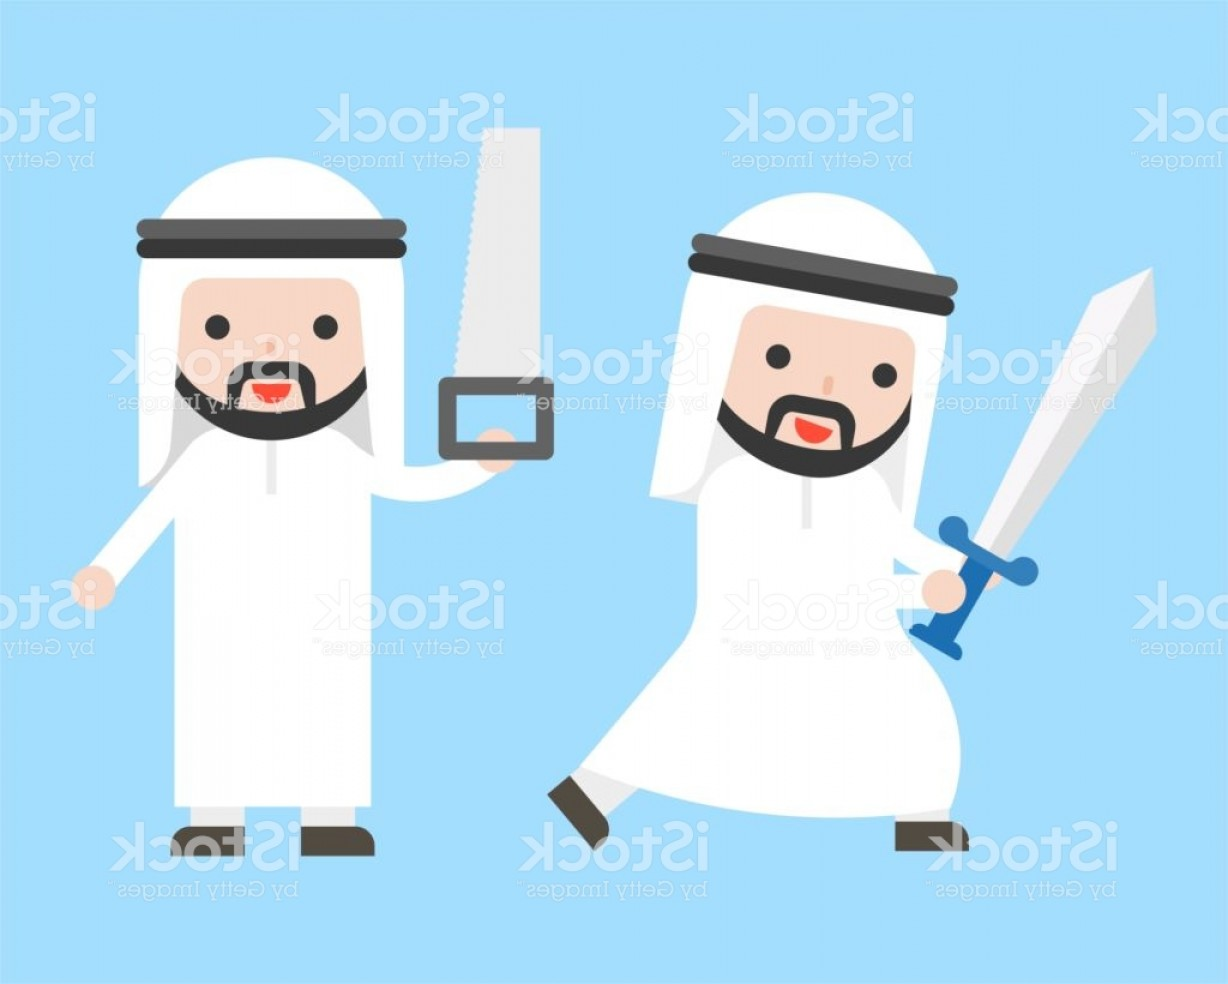 Saudi Sword Vector: Arab Businessman Or Manager Holding Sword And Saw Ready To Use Character Gm